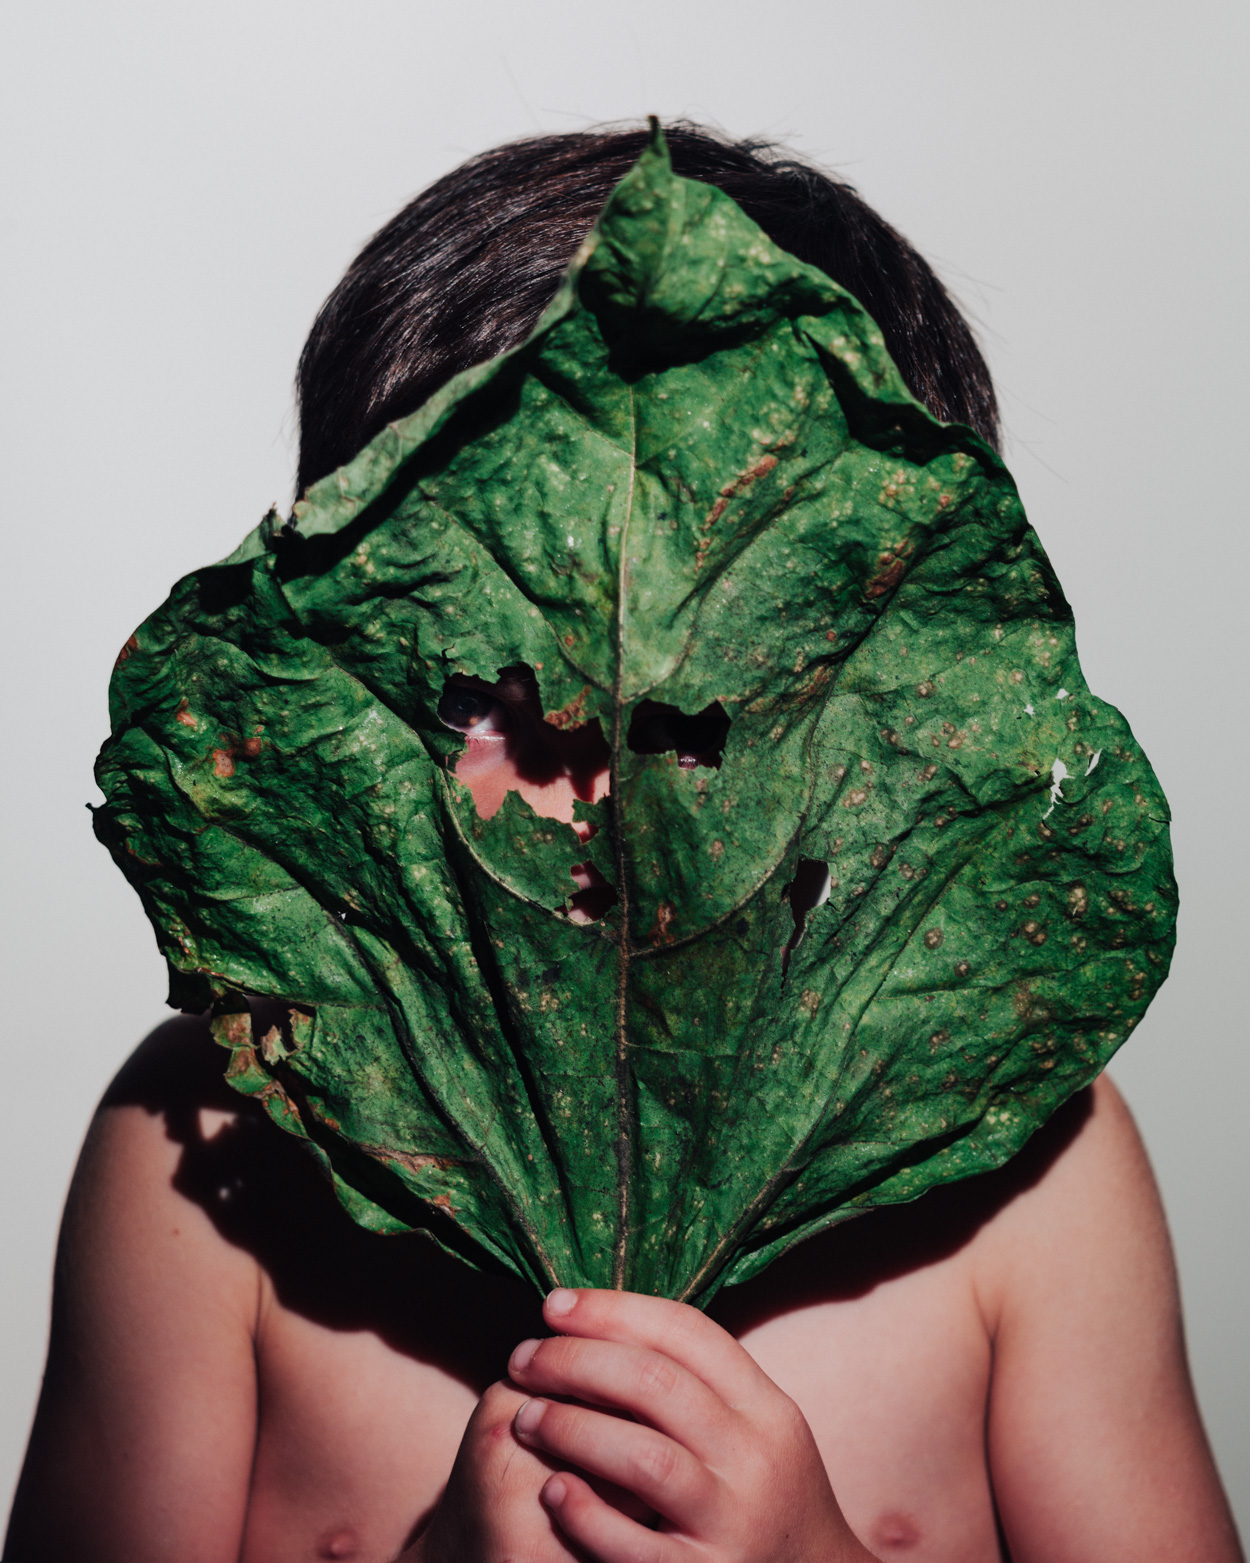 Los Angeles Still Life Photographer - Child holding looking through leaf  by Ray Kachatorian